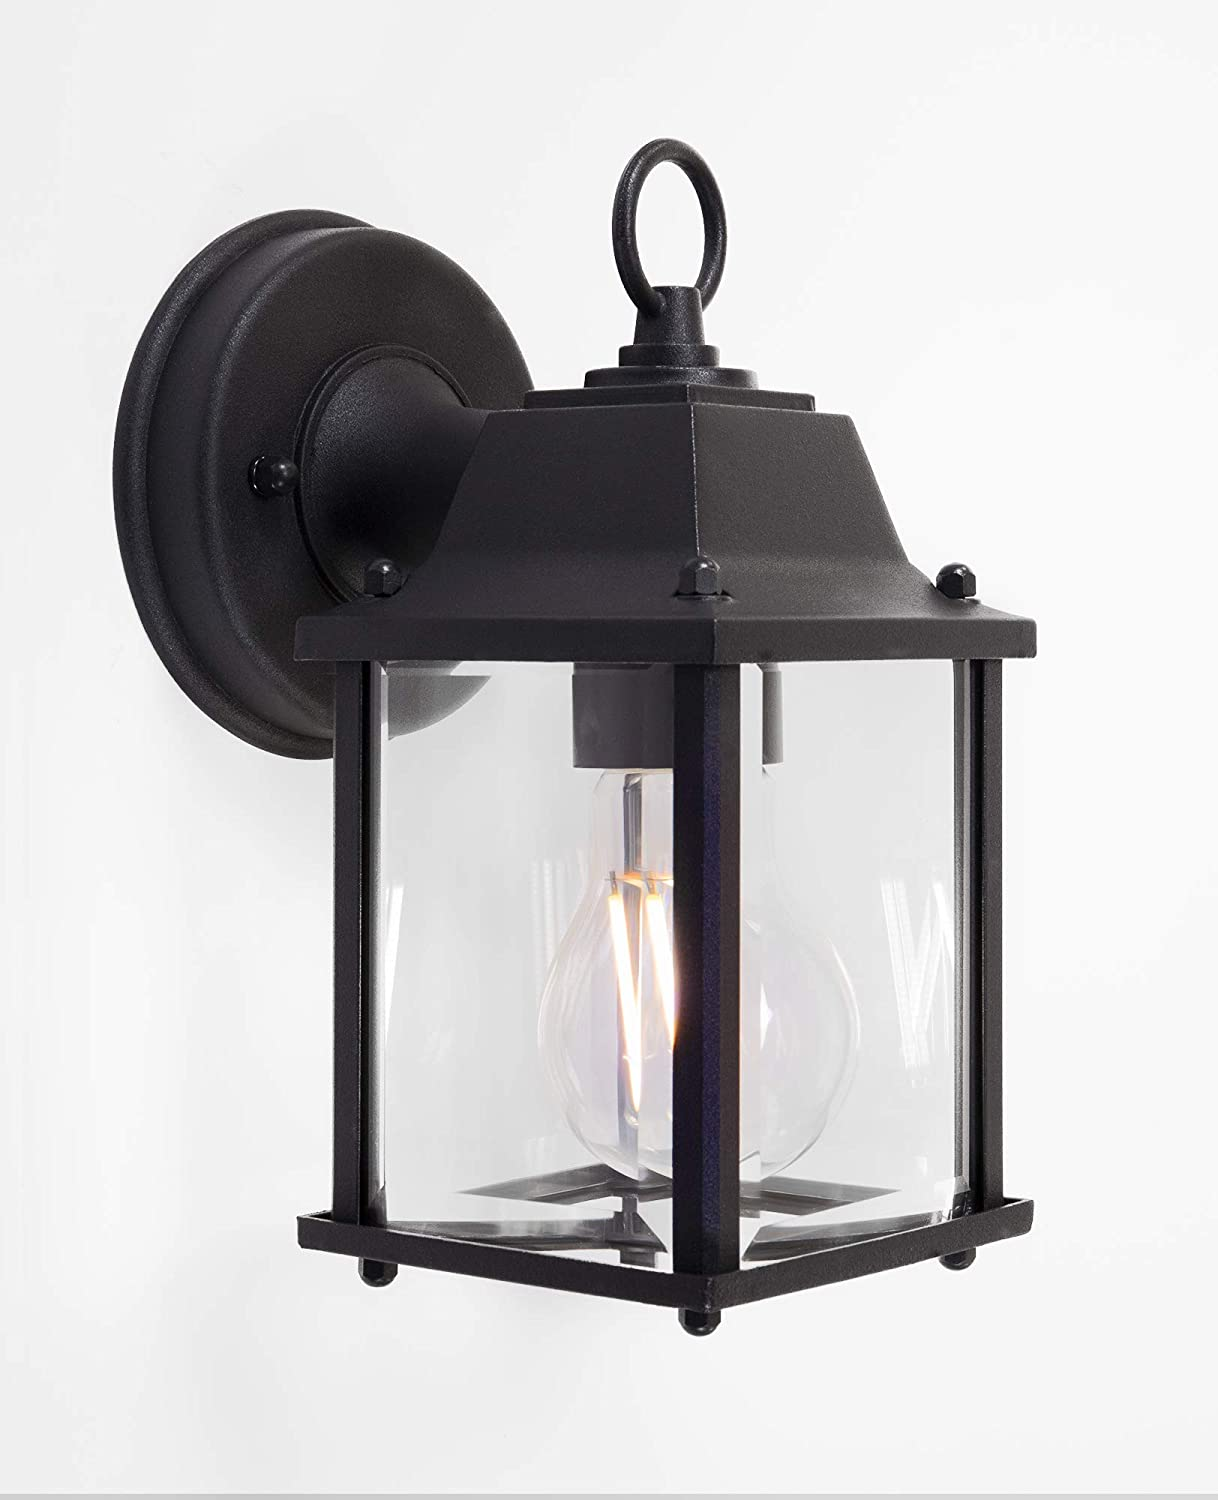 CORAMDEO Outdoor Wall Porch Light, Wall Sconce for Porch, Patio, Deck and More, E26 Medium Base Socket, Suitable for Wet Location, Black Powder Coat Cast Aluminum with Beveled Glass